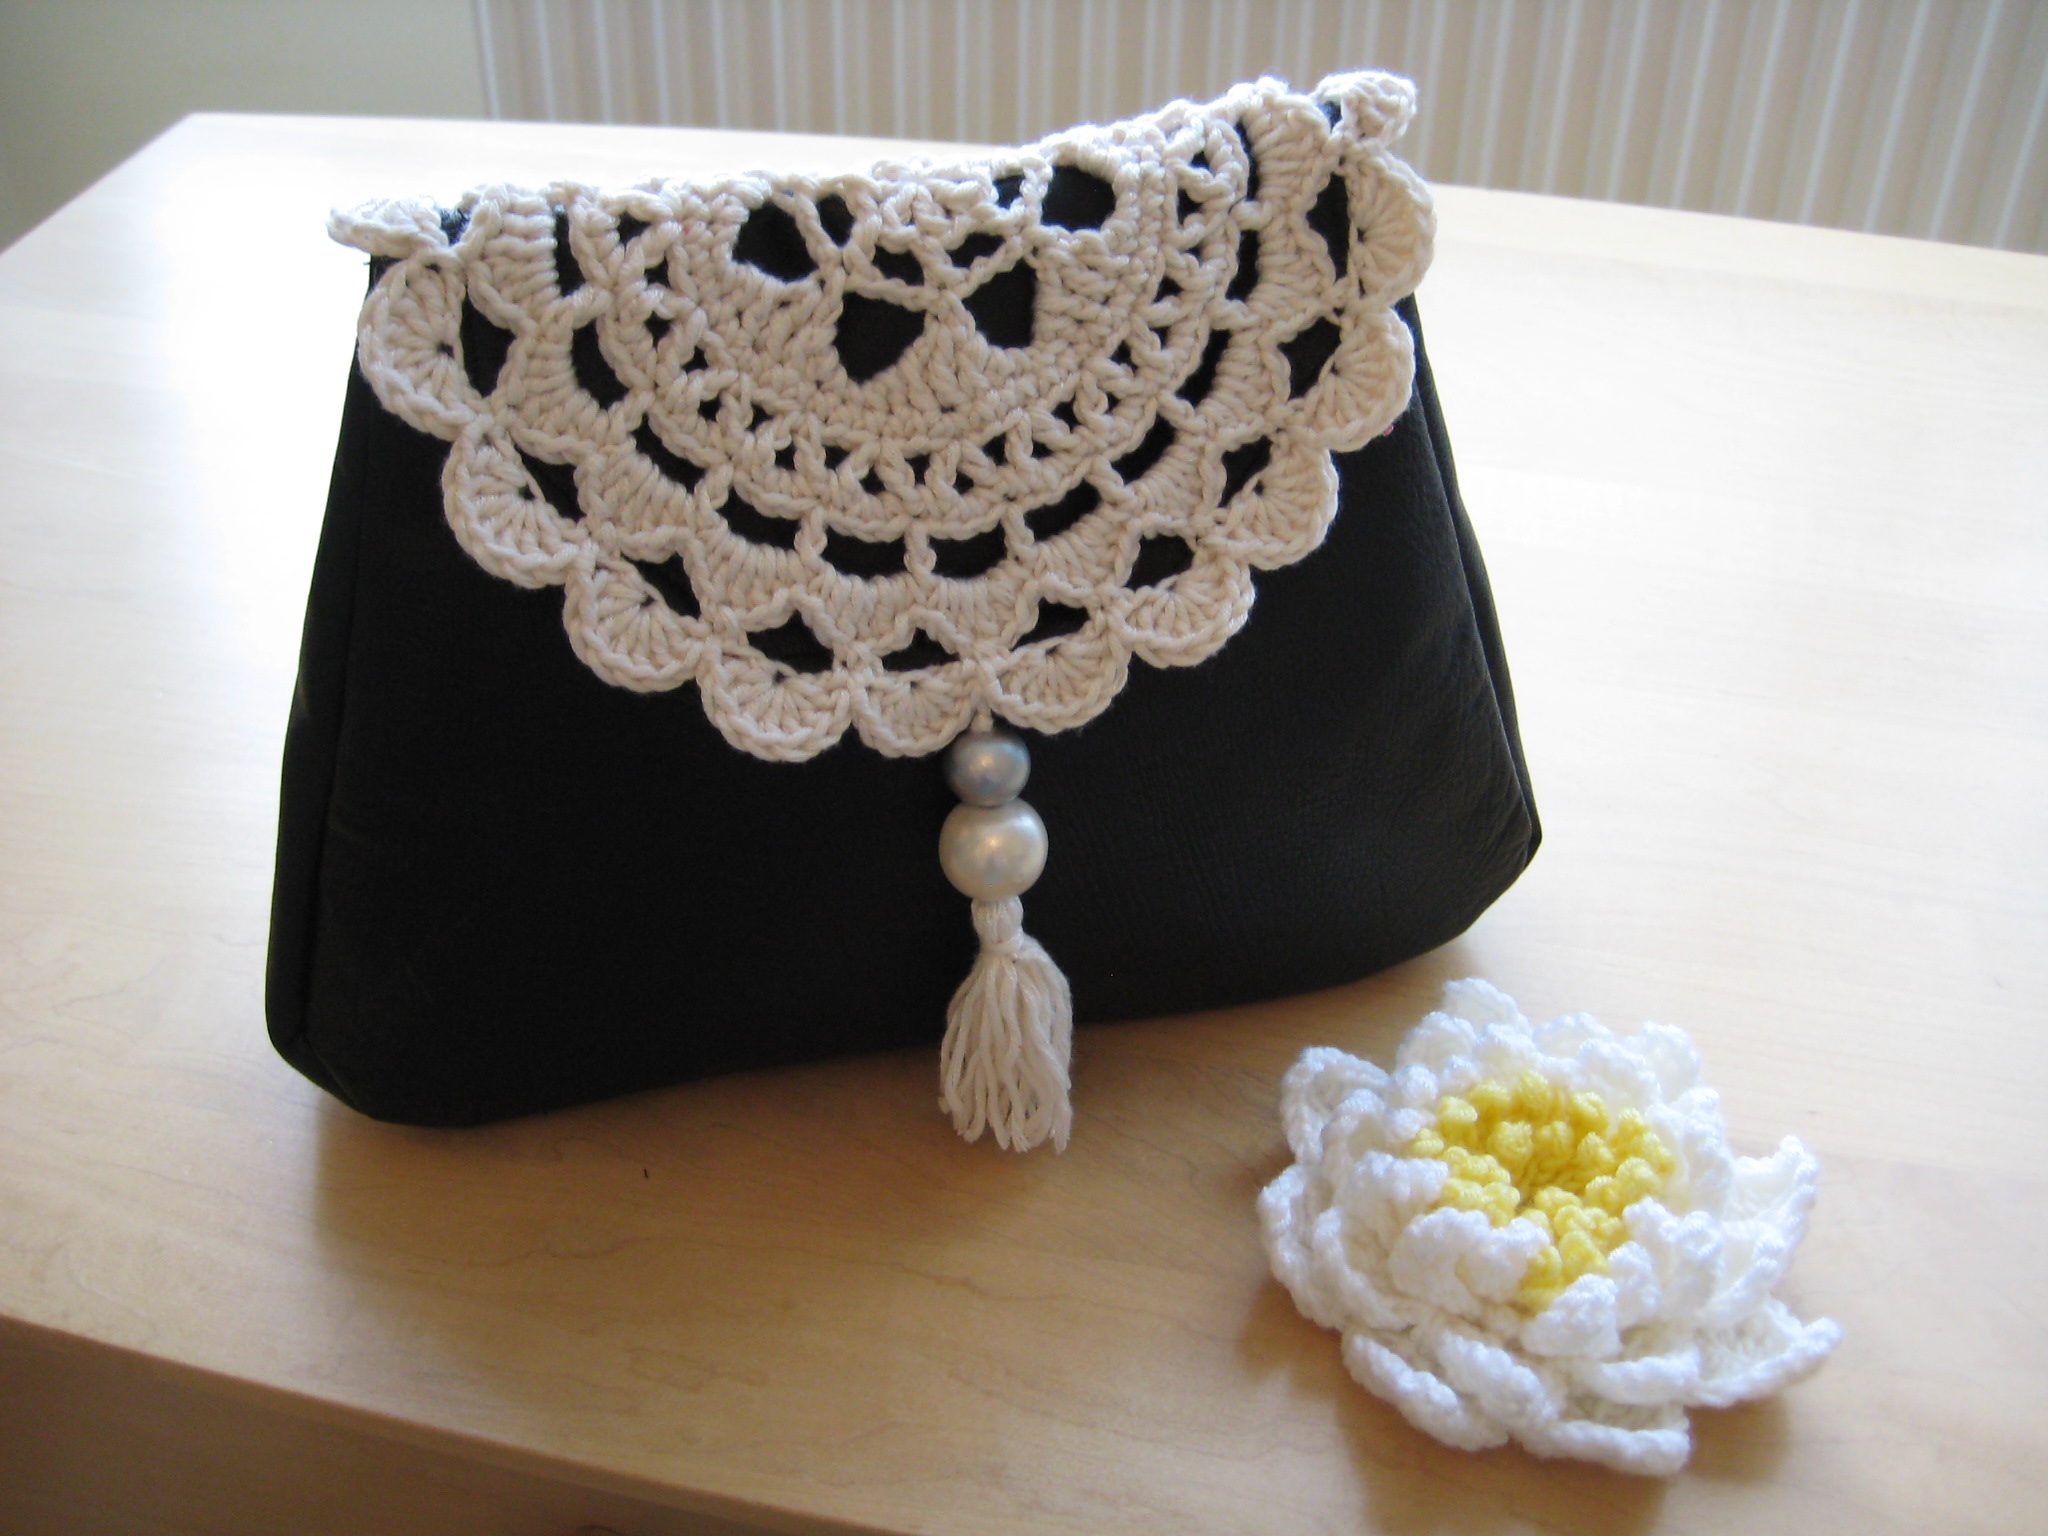 Crochet Clutch Lace Pattern : Leather & Doily Clutch Make My Day Creative